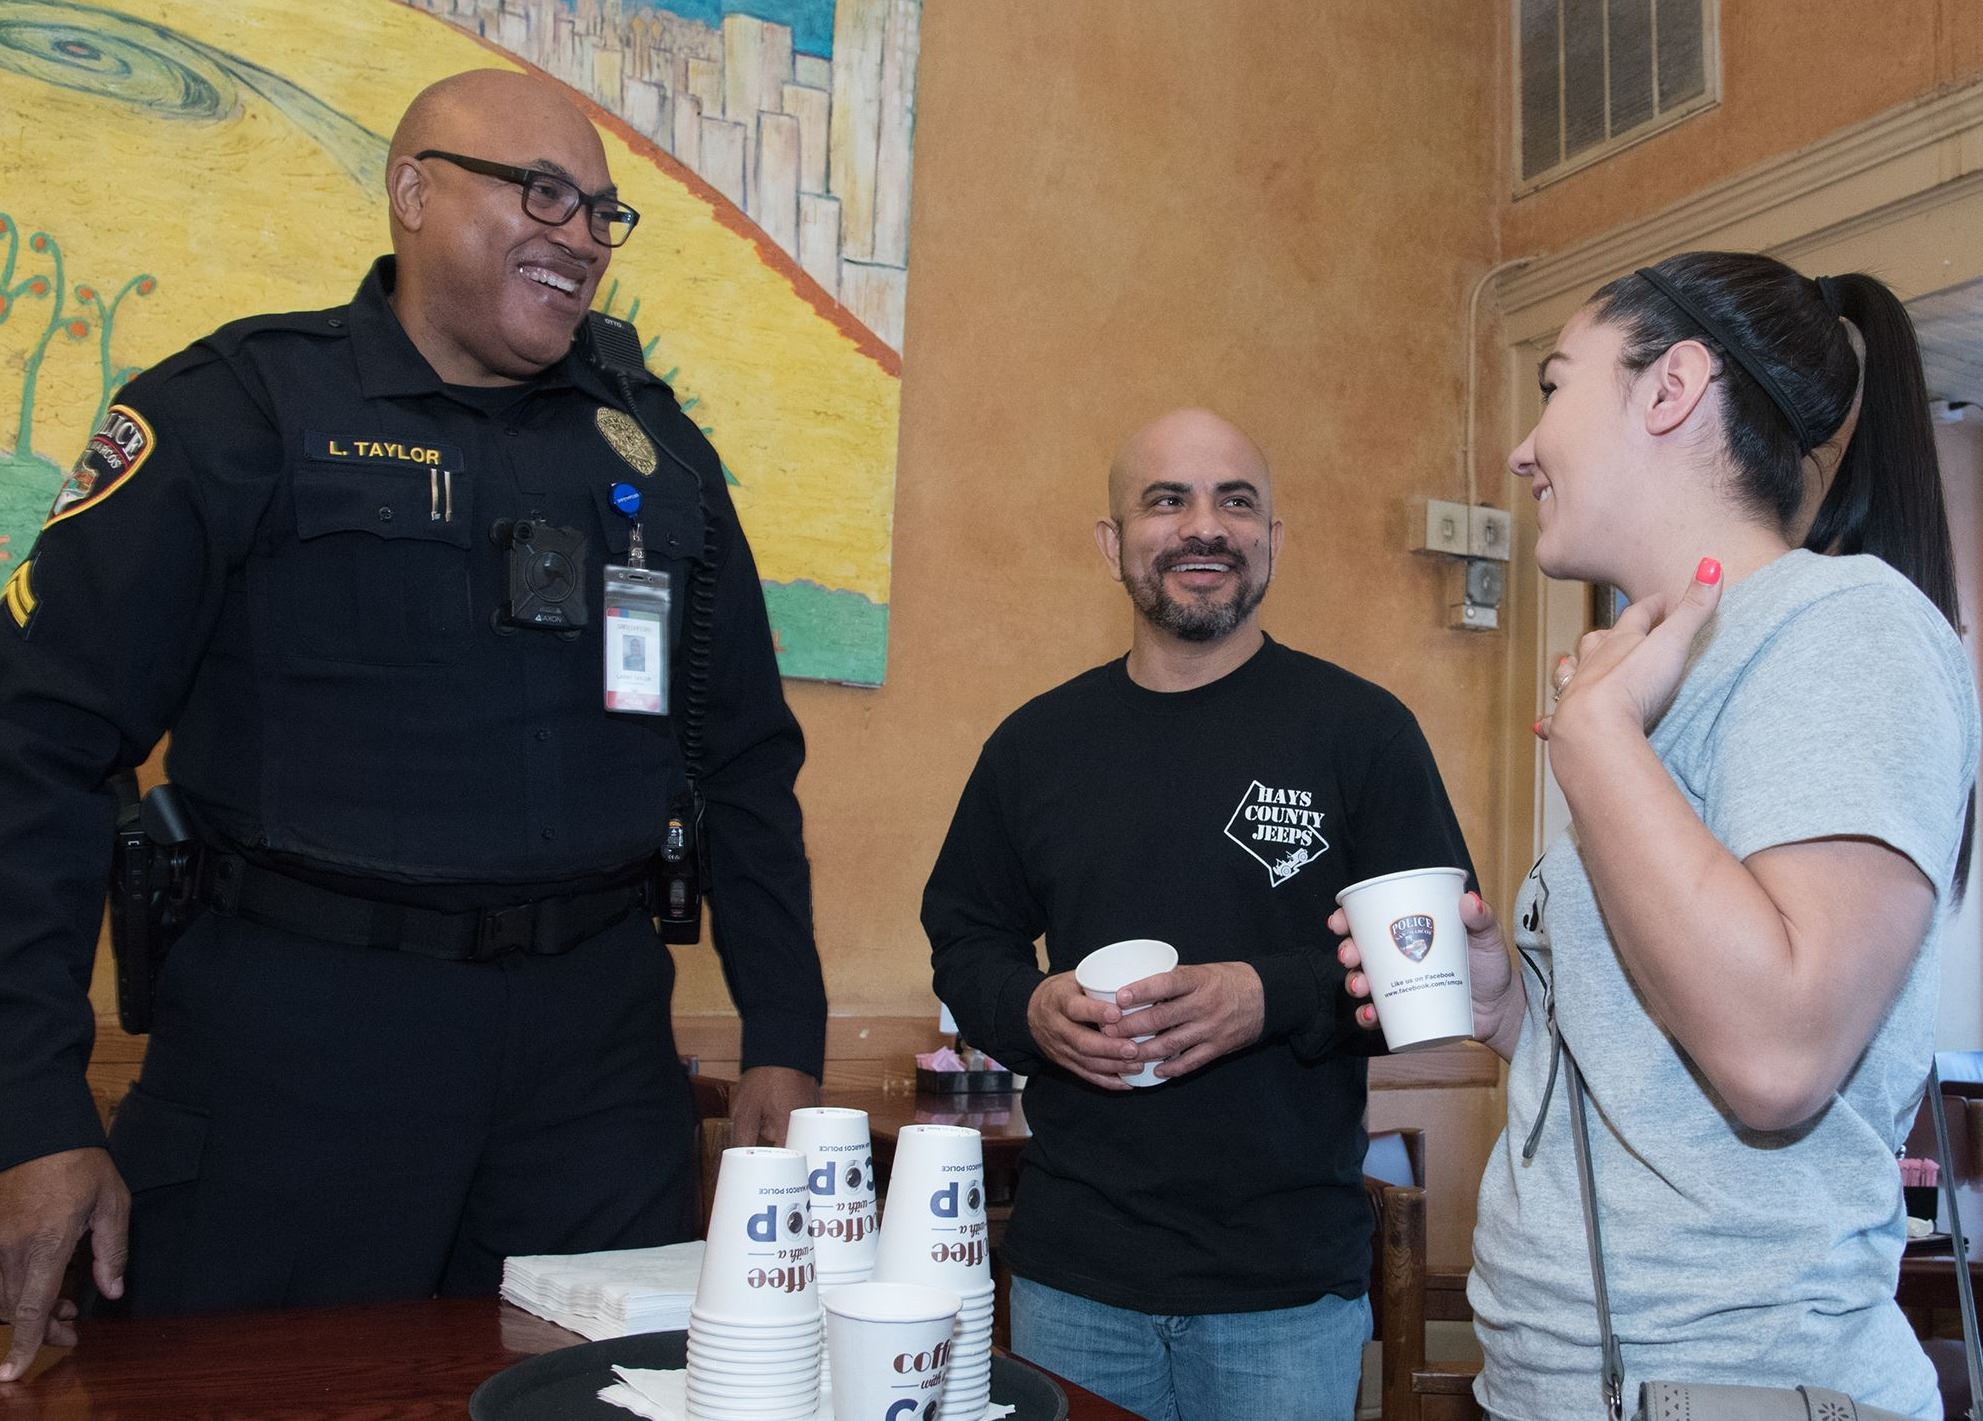 Photo of police officer speaking with community member while all are drinking coffee in a restaurant